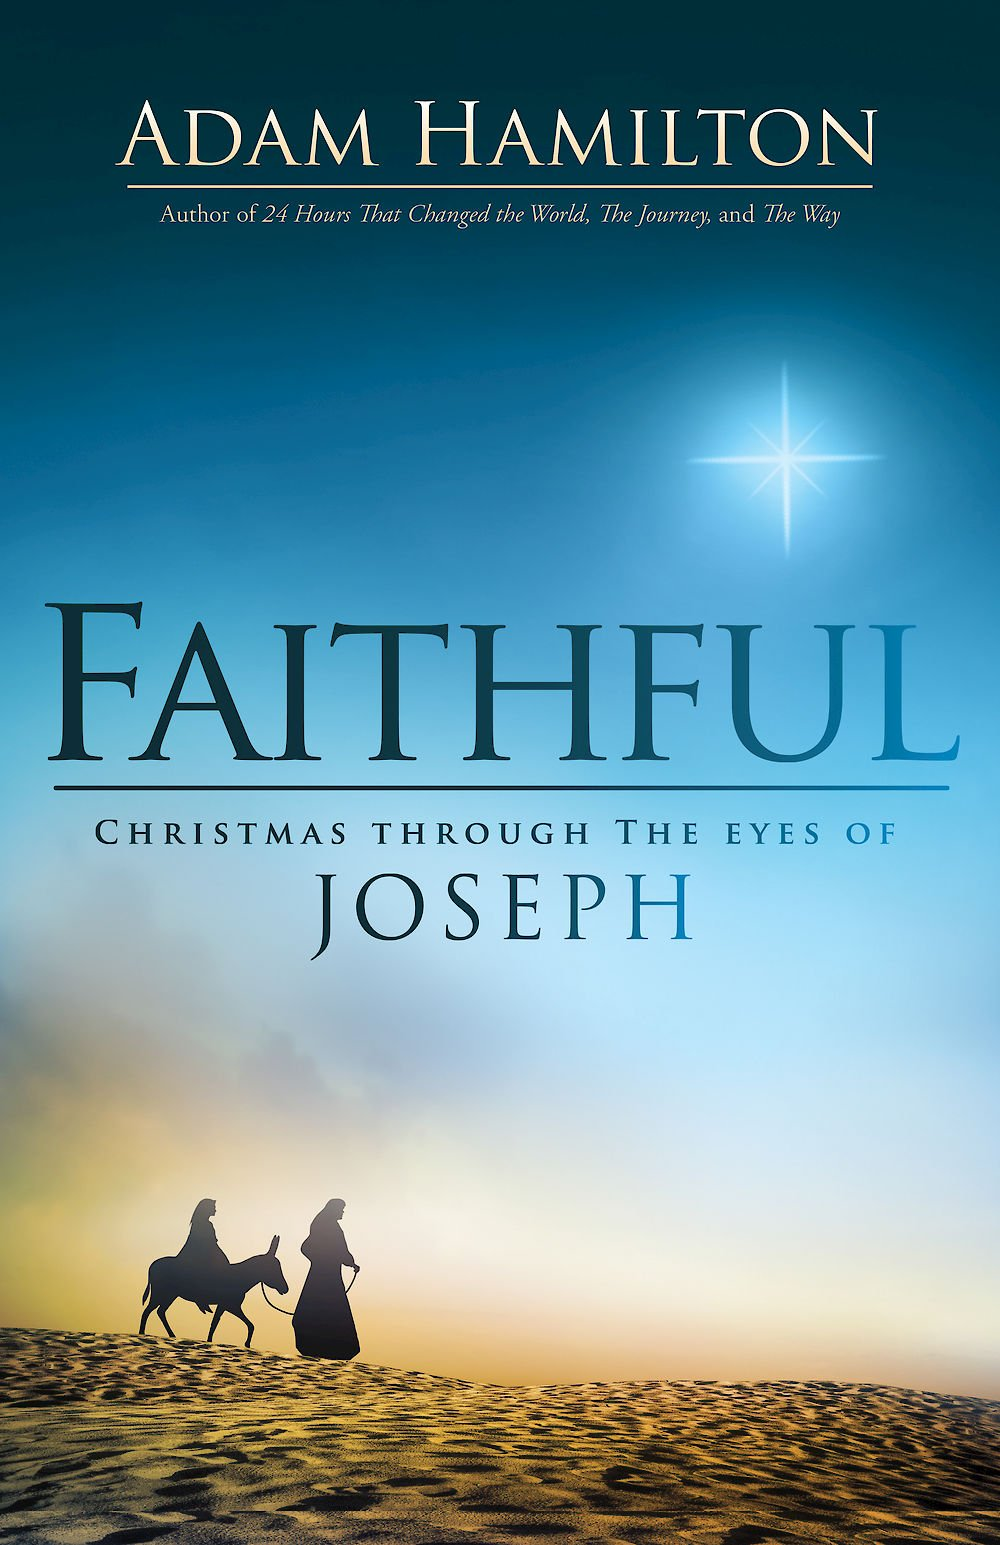 faithful christmas through the eyes of joseph adam hamilton